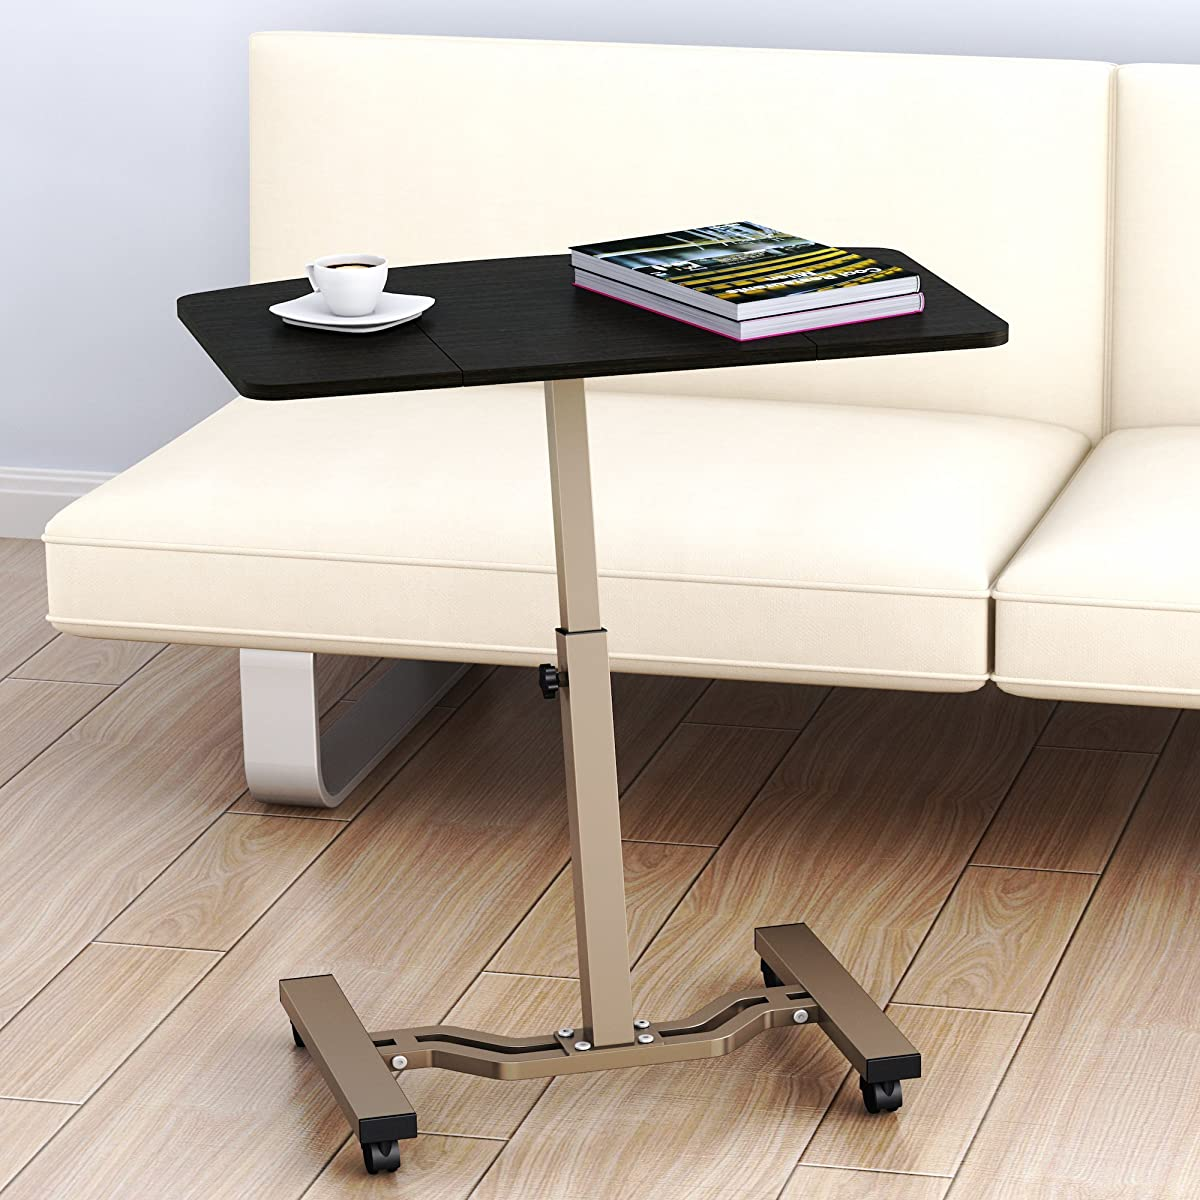 SHW Height Adjustable Mobile Laptop Stand Desk Rolling Cart